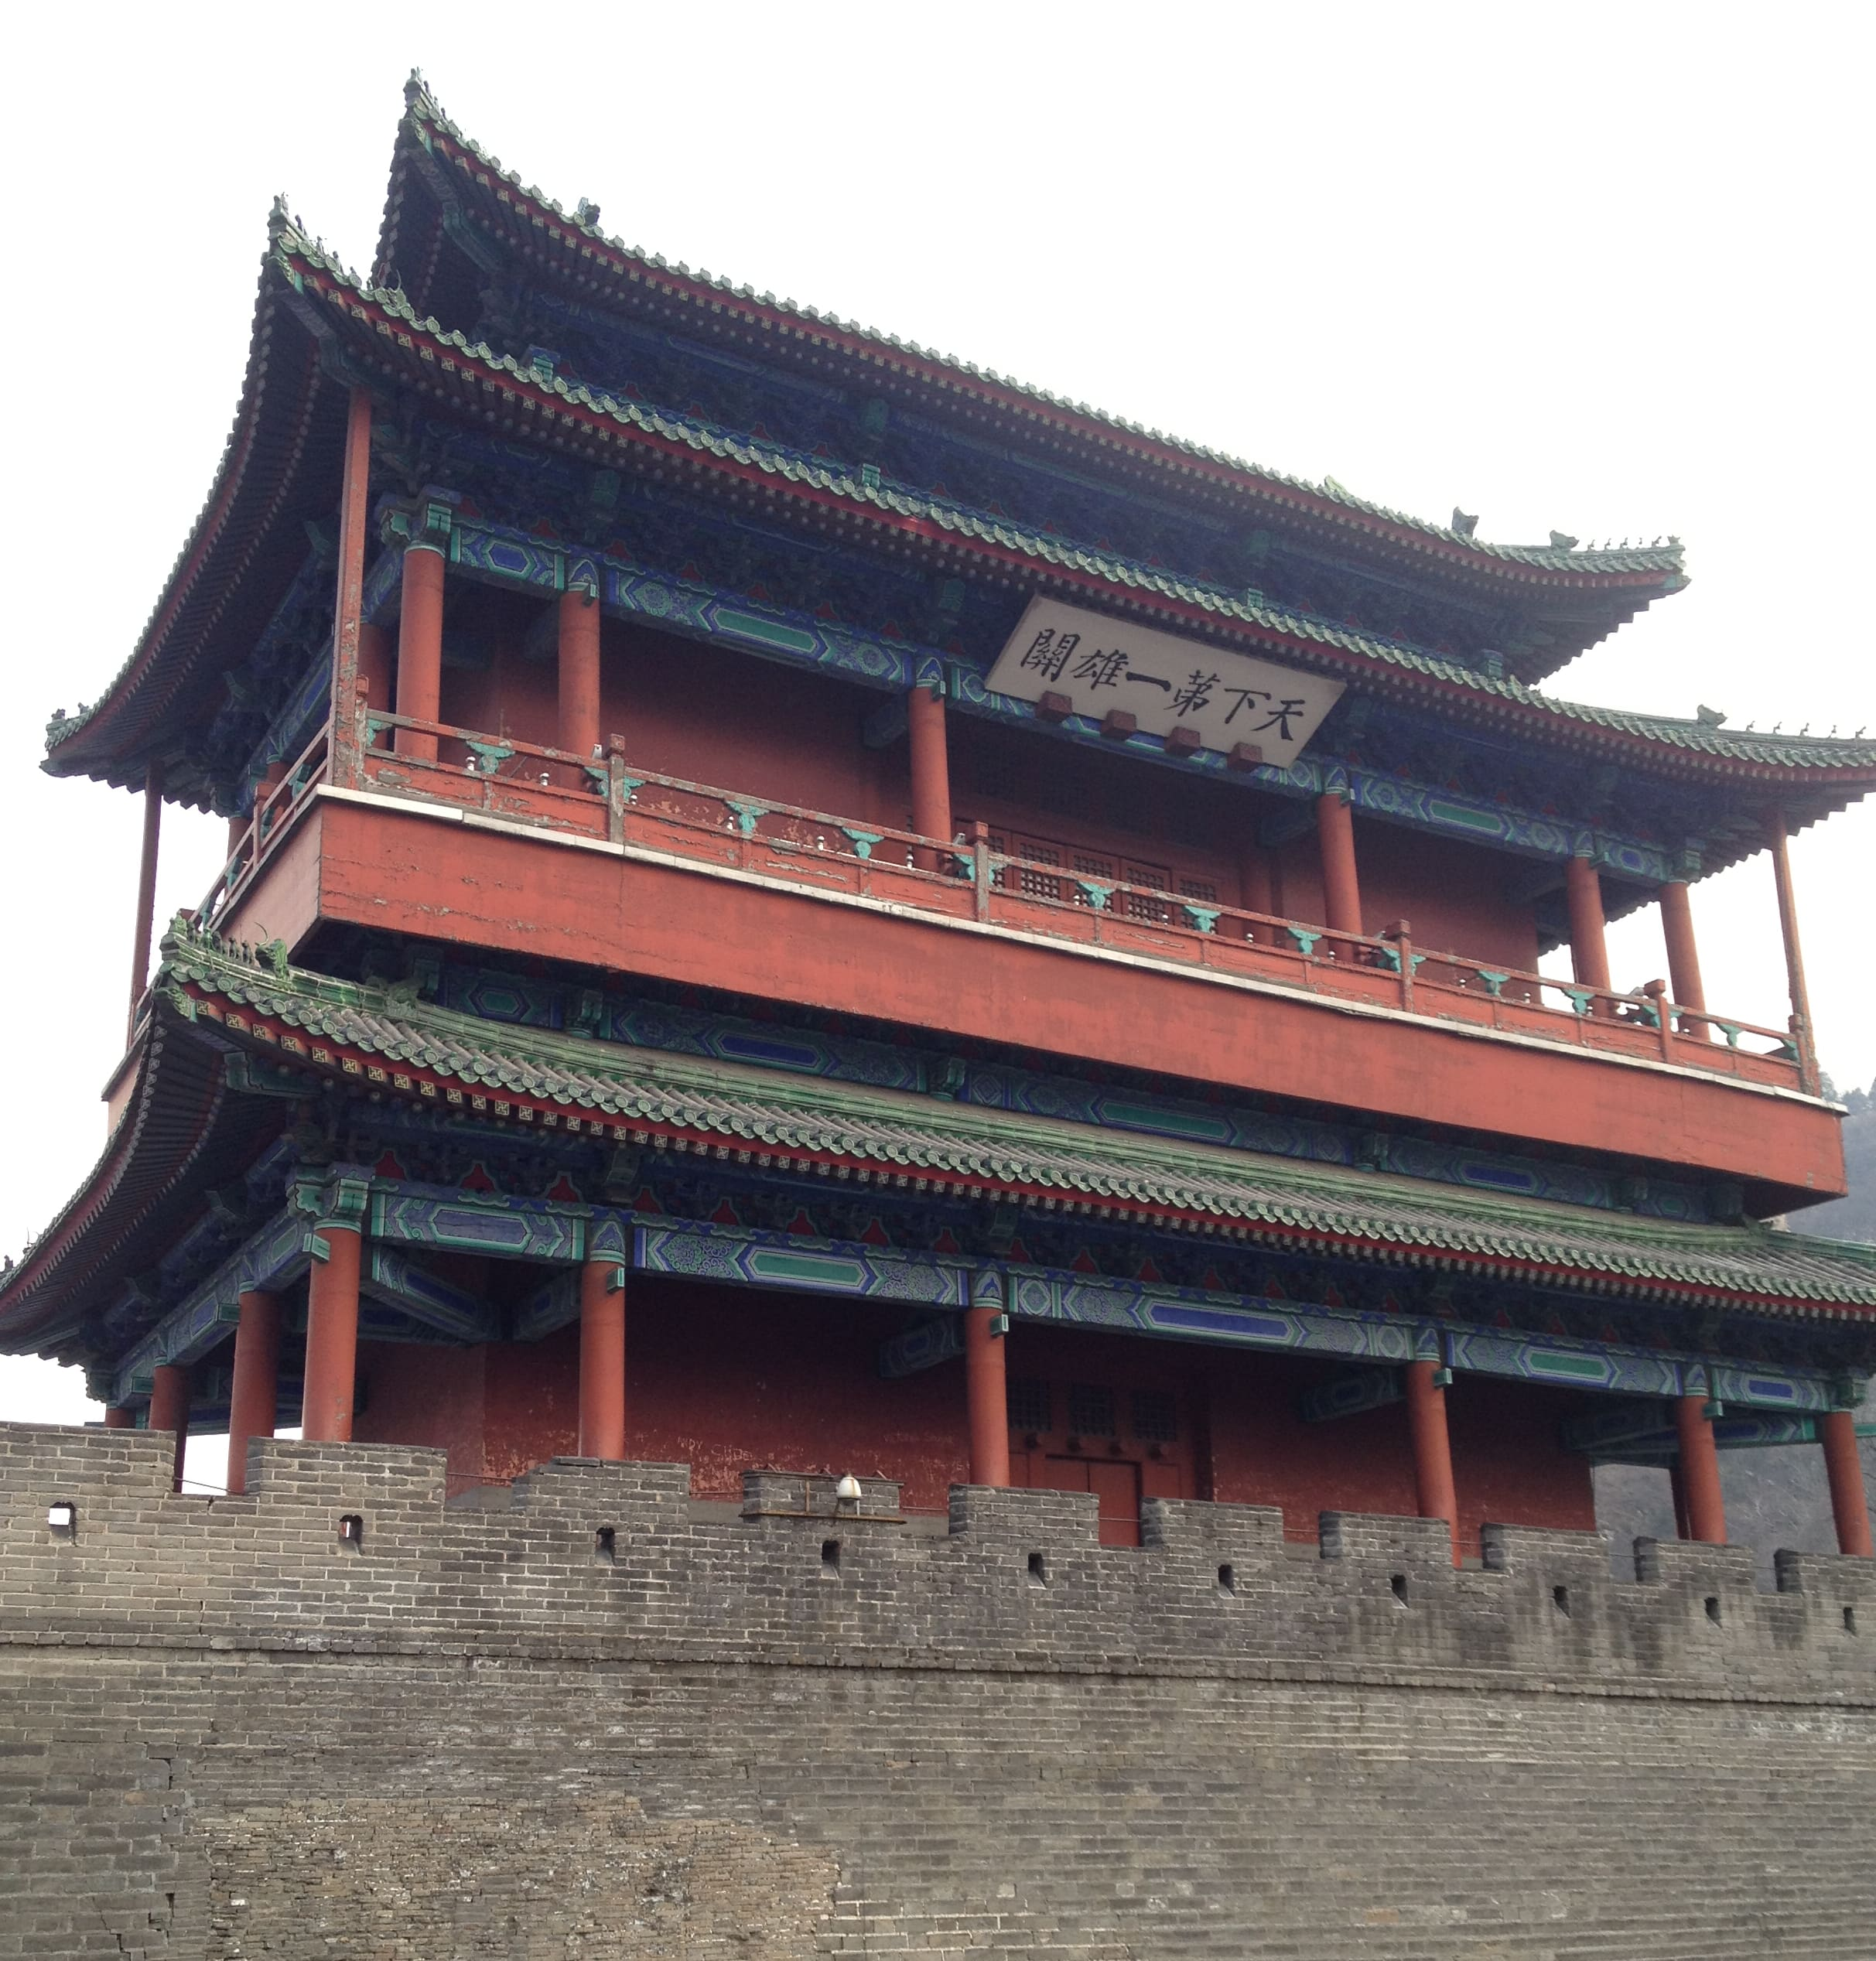 Chamber Trip Garrett County Of Commerce Md China Easthern 6 Days Shanghai Hangzhou Suzhou Chambers In Canada And The Usa This Fully Escorted Is Meant To Be An Introduction People History Culture Daily